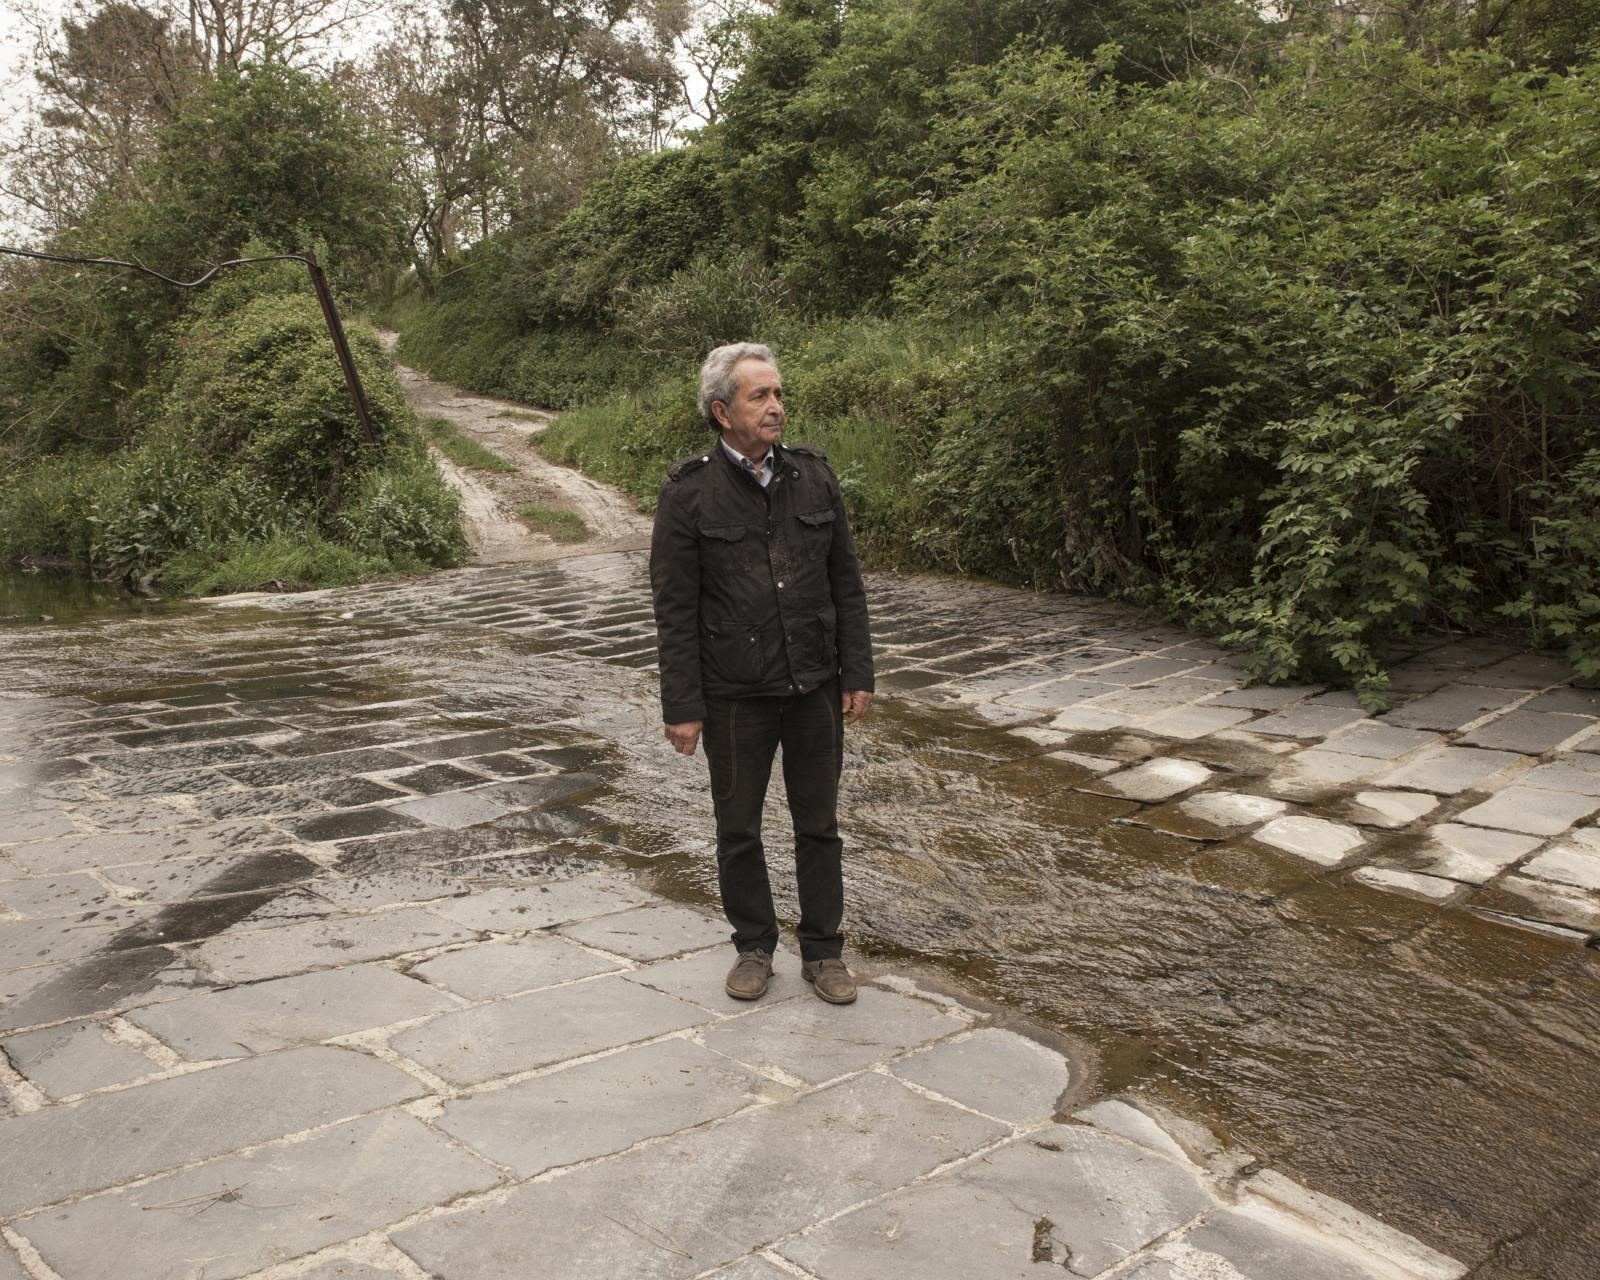 Solophra, April 2019. Portrait of Ermete De Maio, activist and environmentalist who for over fifty years has been fighting for the reclamation and restoration of the Solofrana, the main tributary and source of pollution of the river Sarno.